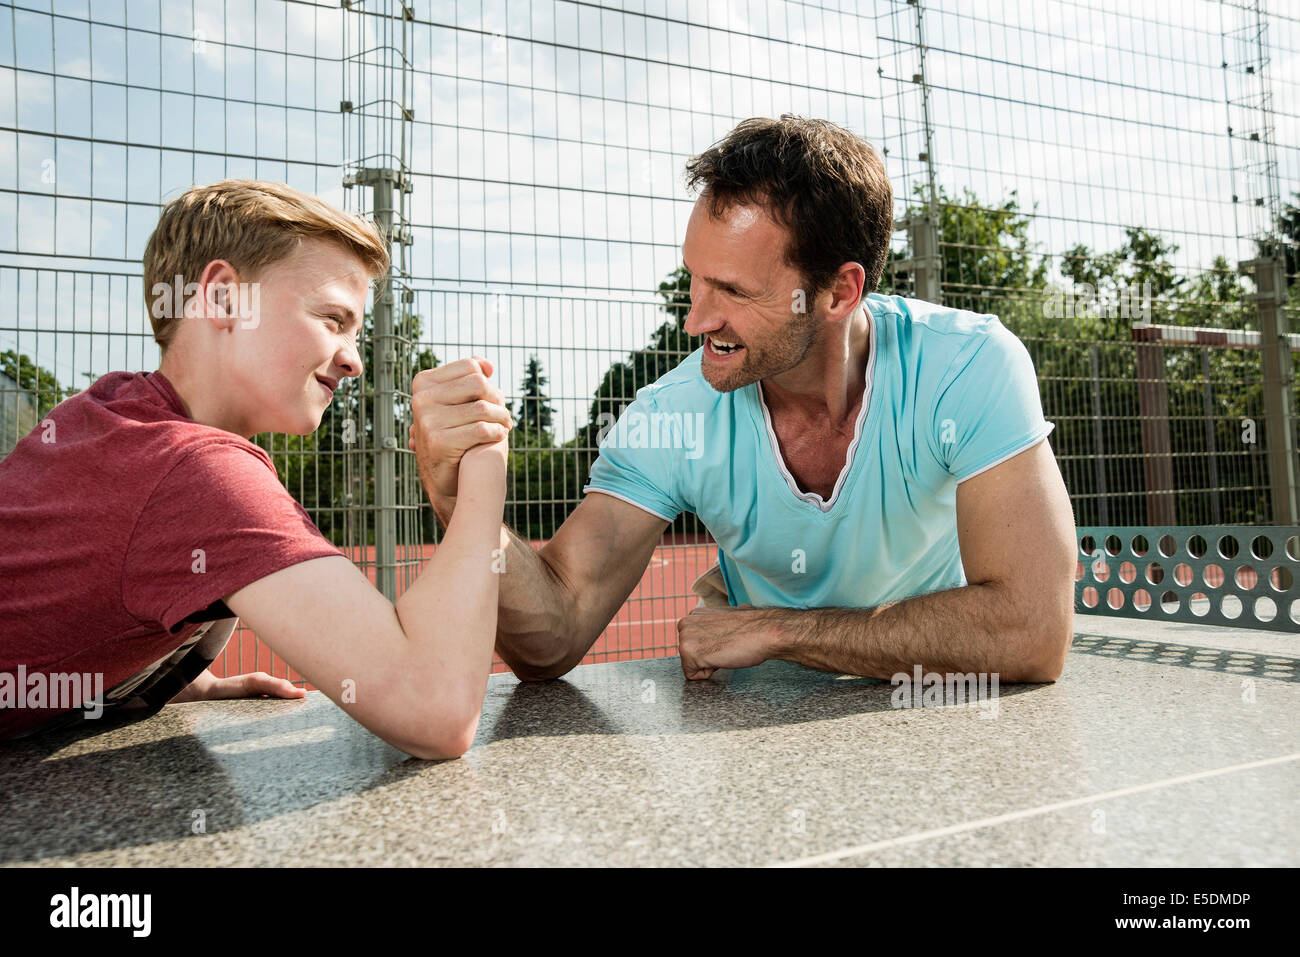 arm wrestling with my father by brad mannings essay - comparing brad manning's short story arm wrestling with my father, and itabari njeri's when morpheus held him the relationship between a father and son stems from an unspoken competition in many countries.